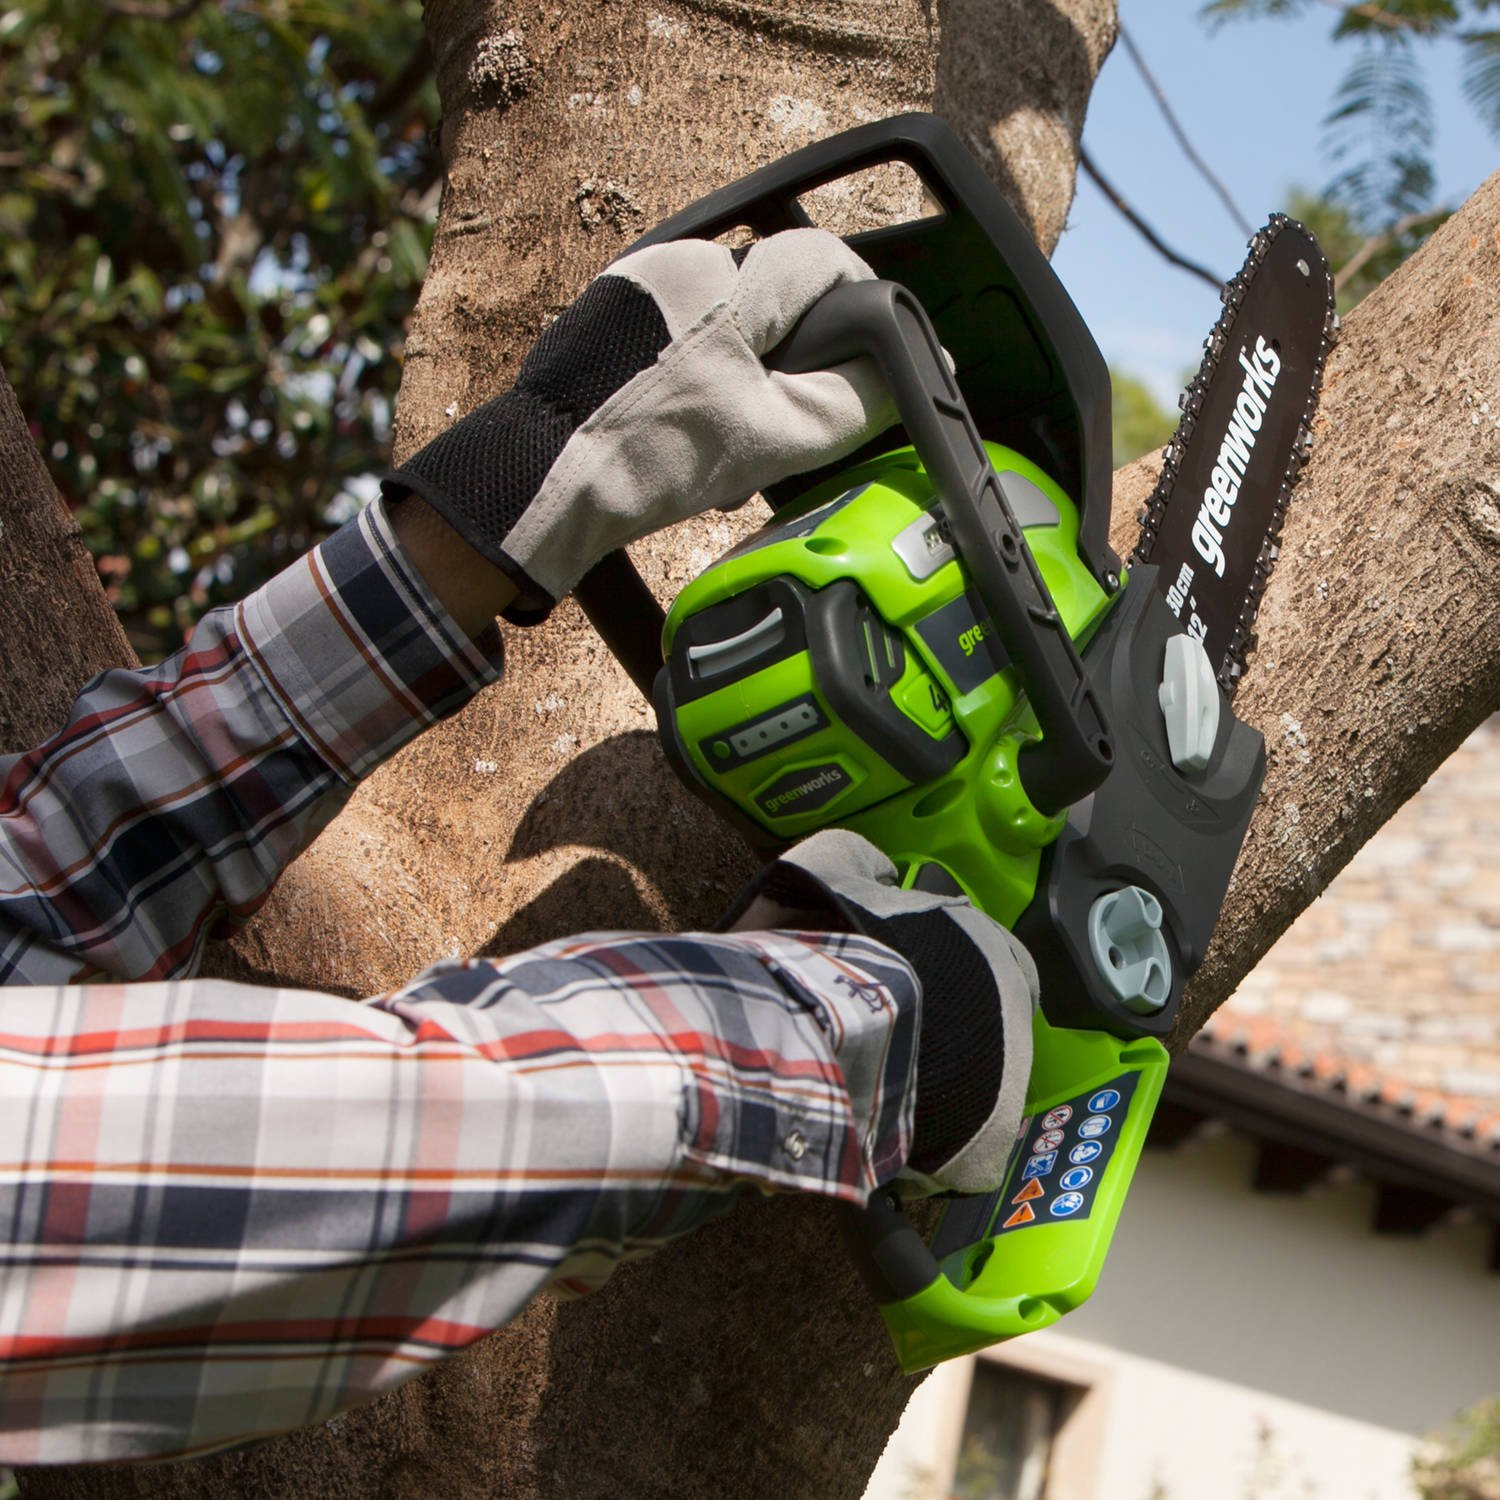 GreenWorks 2000219 40V 12'' Cordless Chainsaw, Includes Battery and Charger